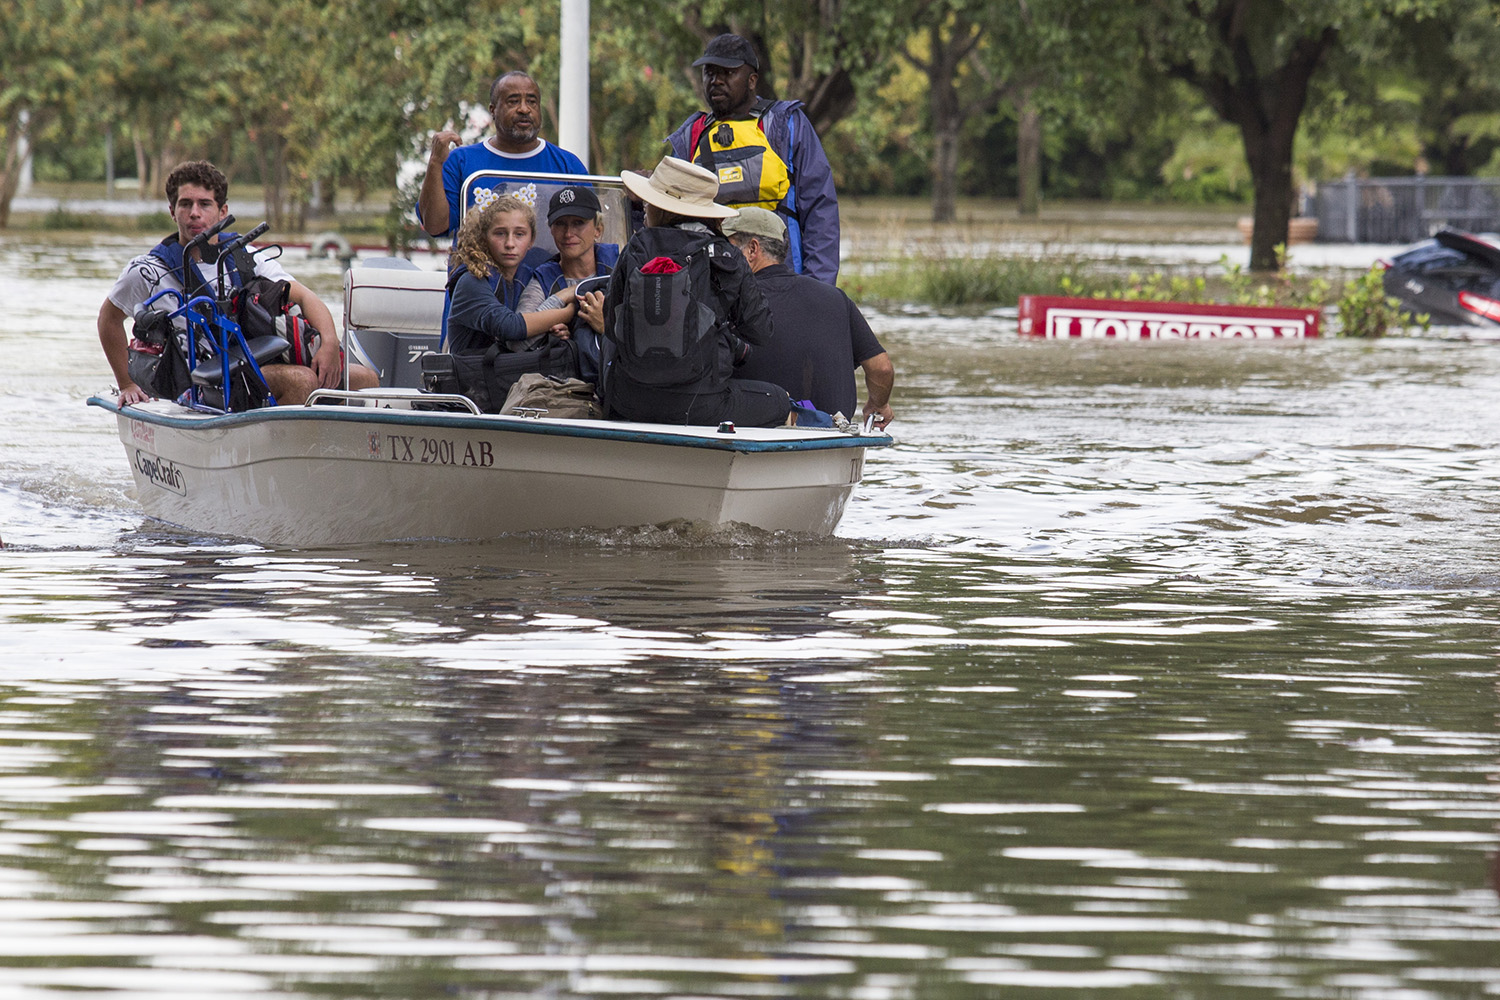 Evacuees flee flooding in a boat with a nearly submerged Houston sign behind them, on Aug, 29, 2017.